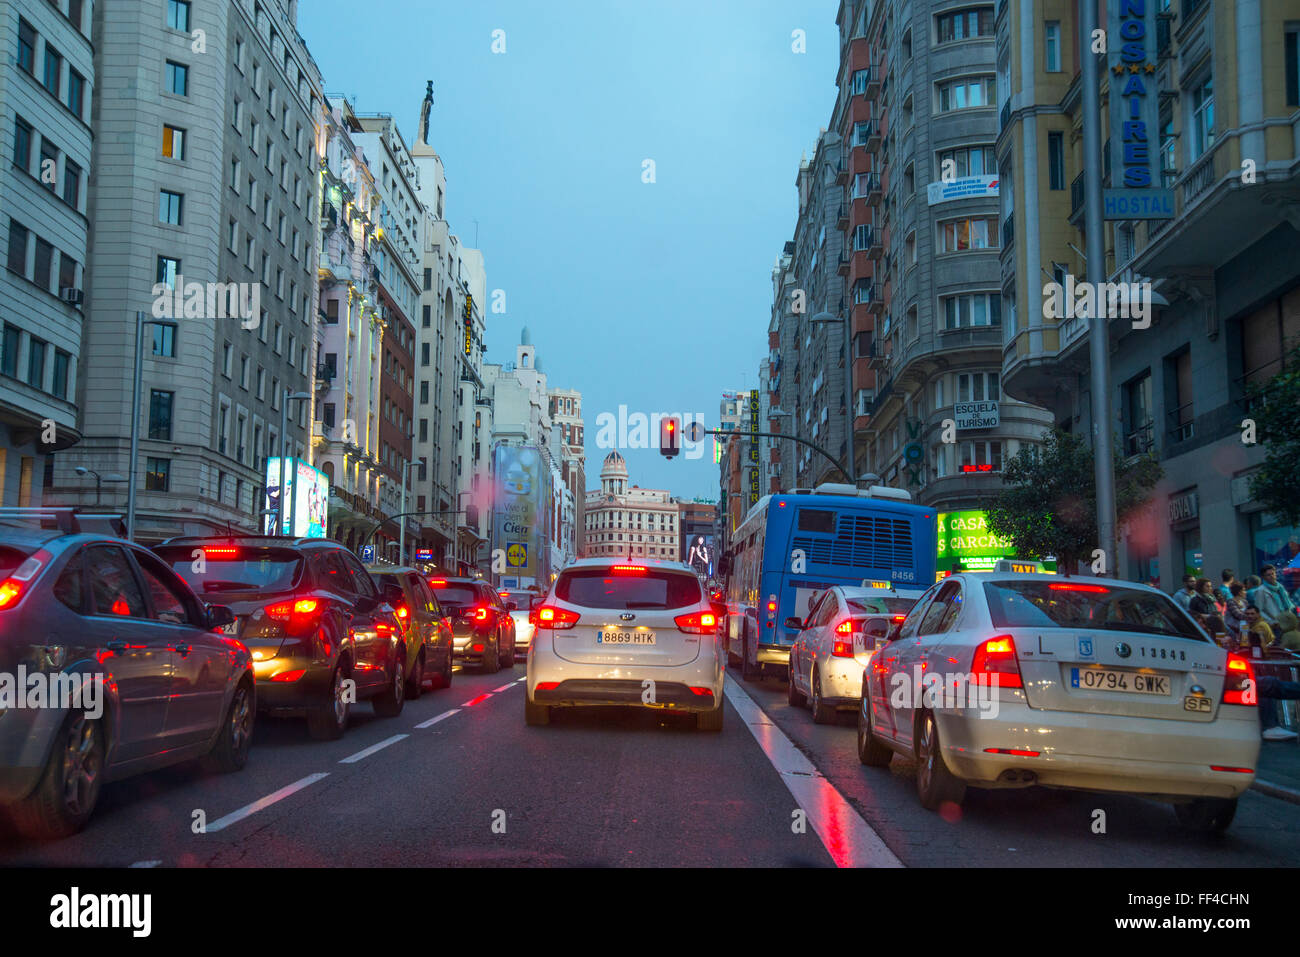 Traffic jam in Gran Via street at nightfall. Madrid, Spain. Stock Photo